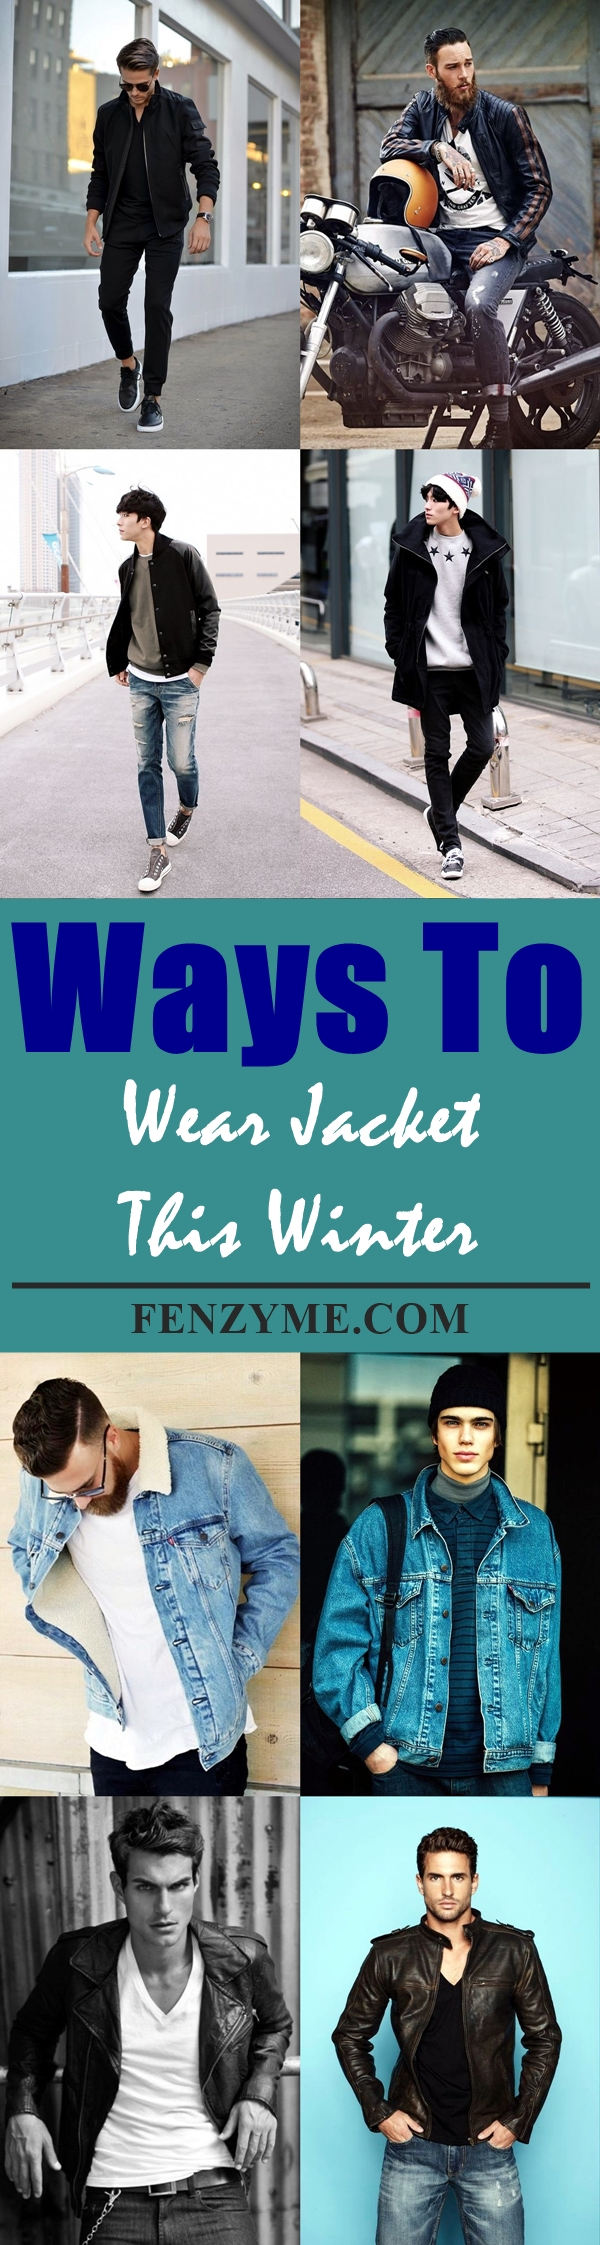 ways-to-wear-jacket-this-winter-19